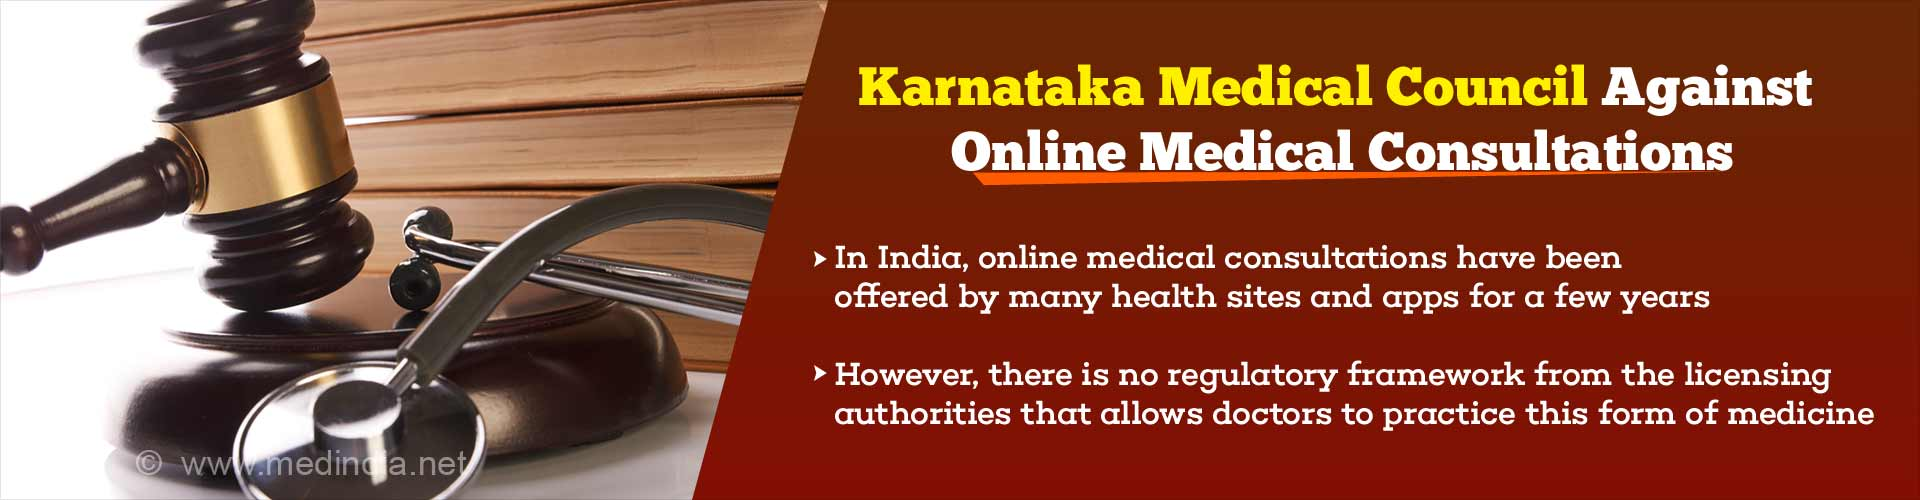 Status of Online Medical Consultation in India Has Regulatory Issues